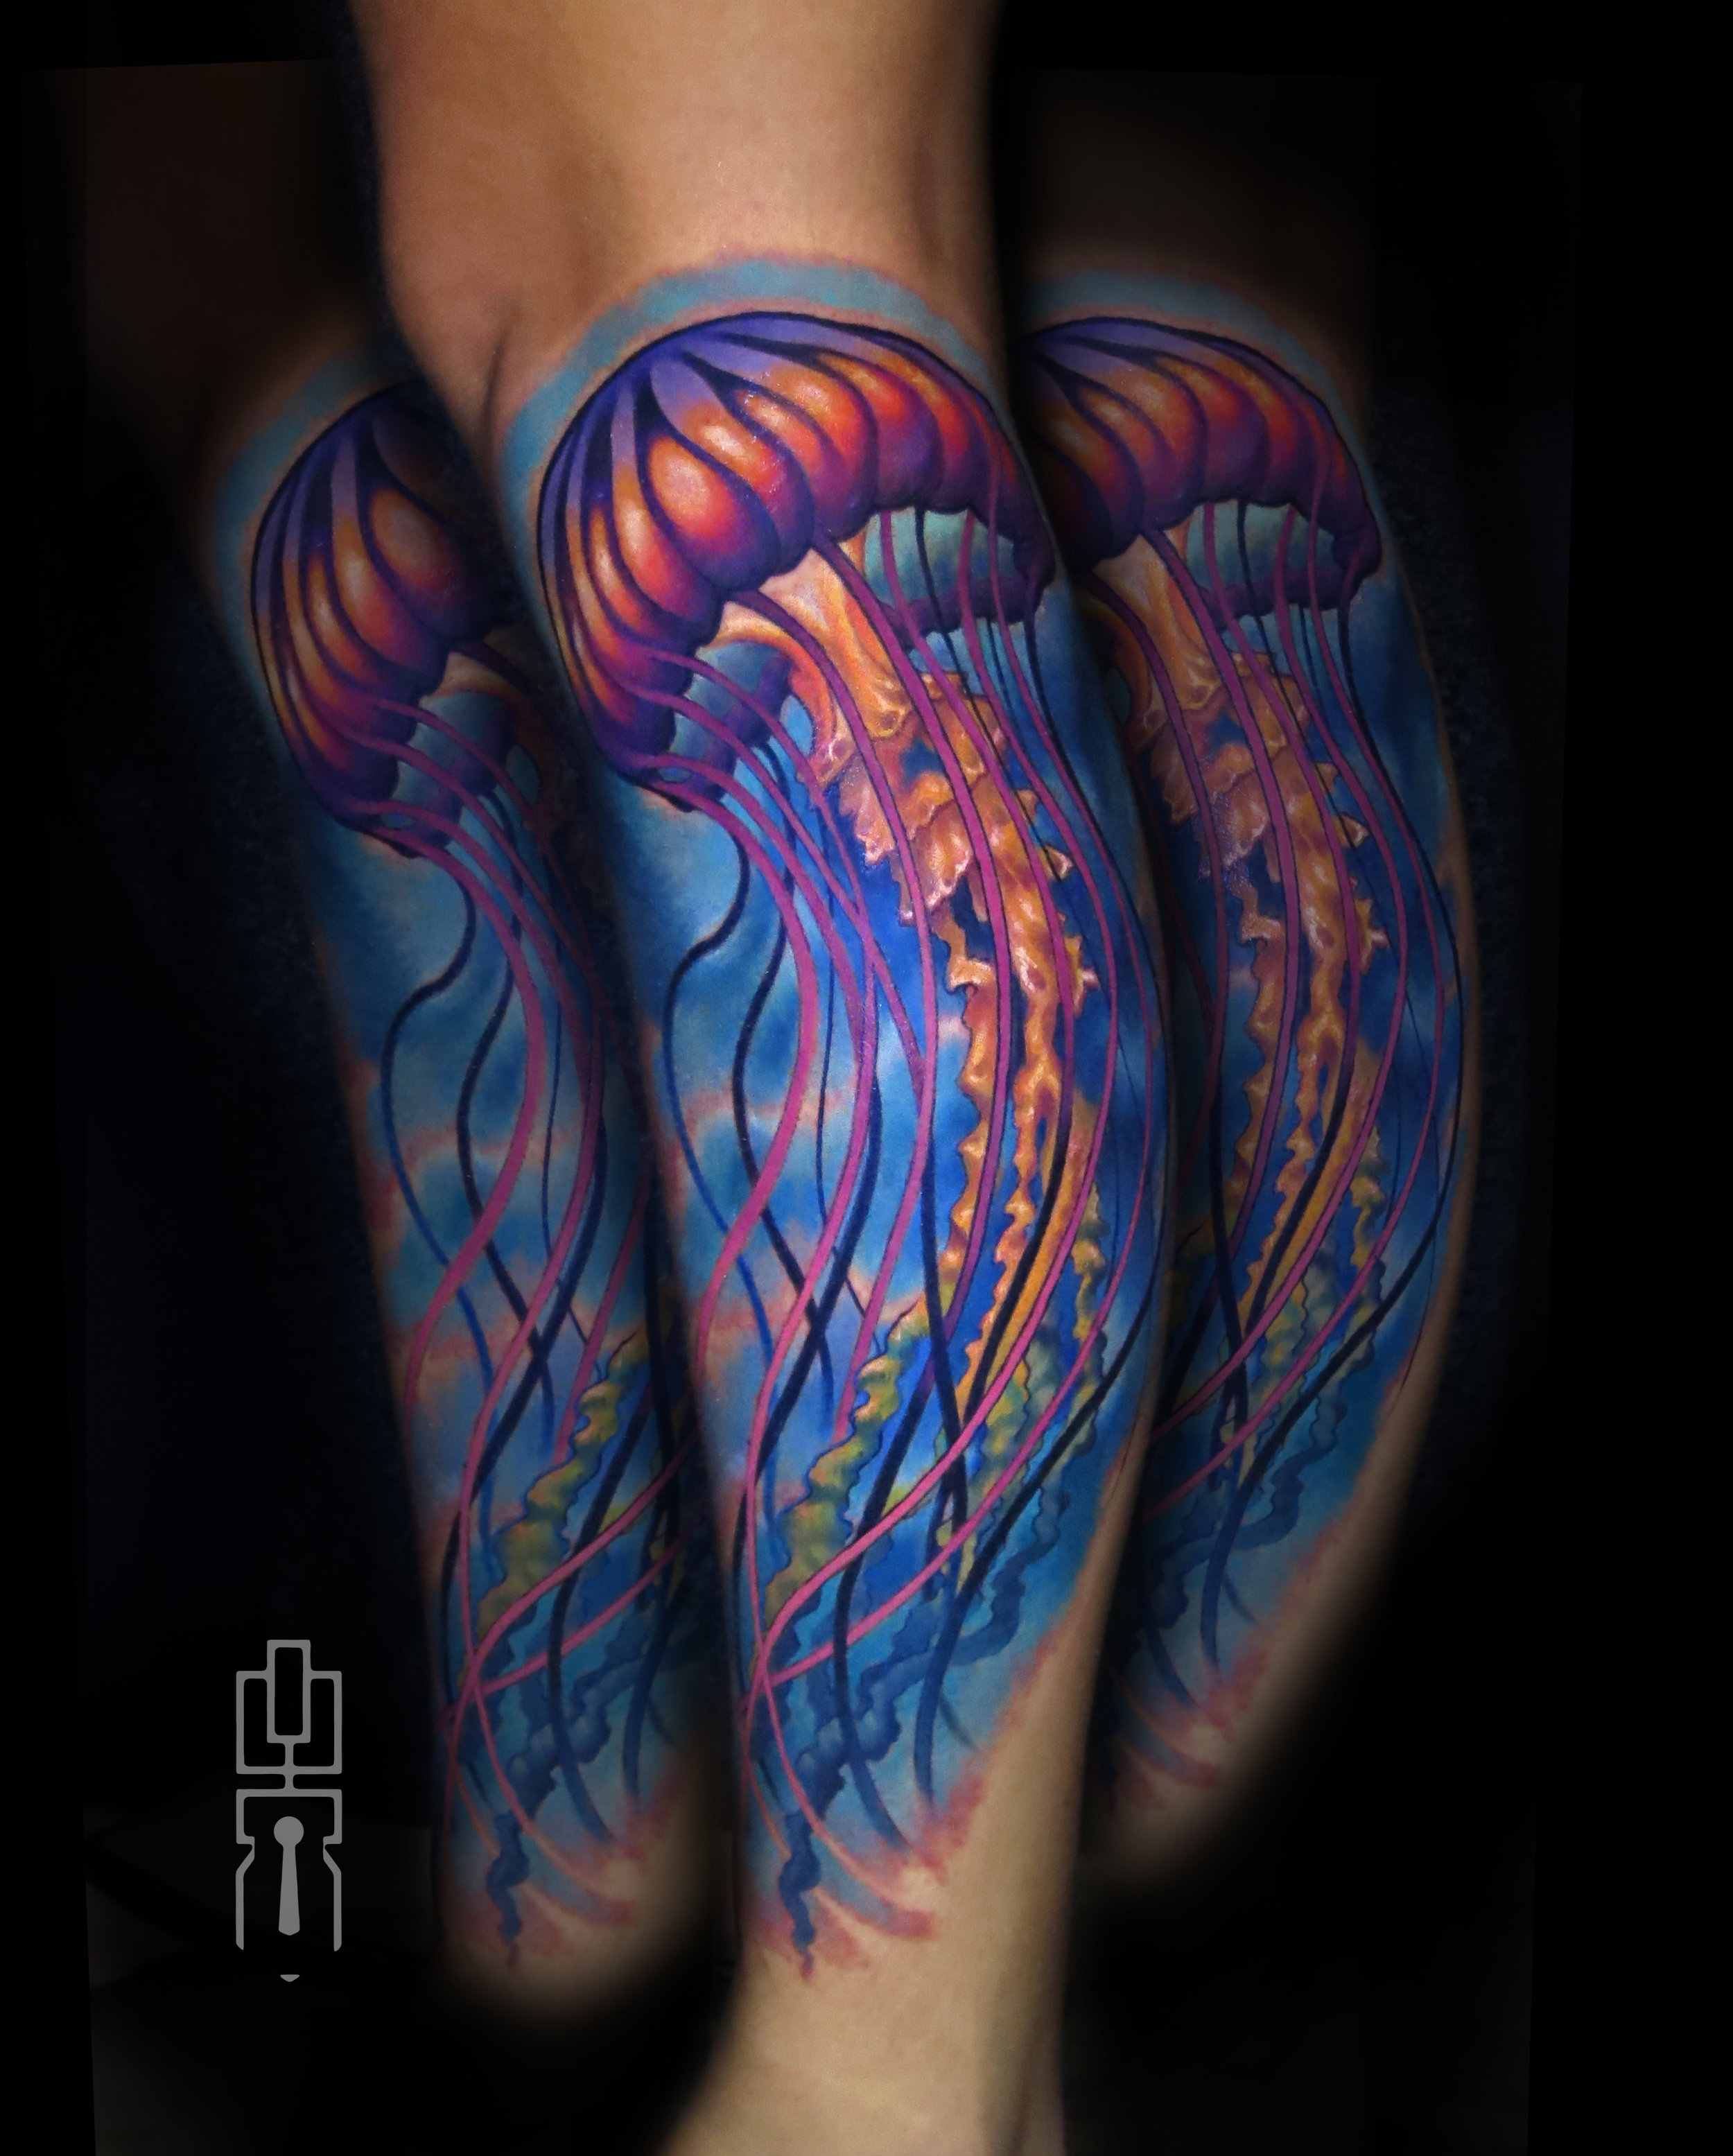 jellyfish illustrative tattoo.jpg